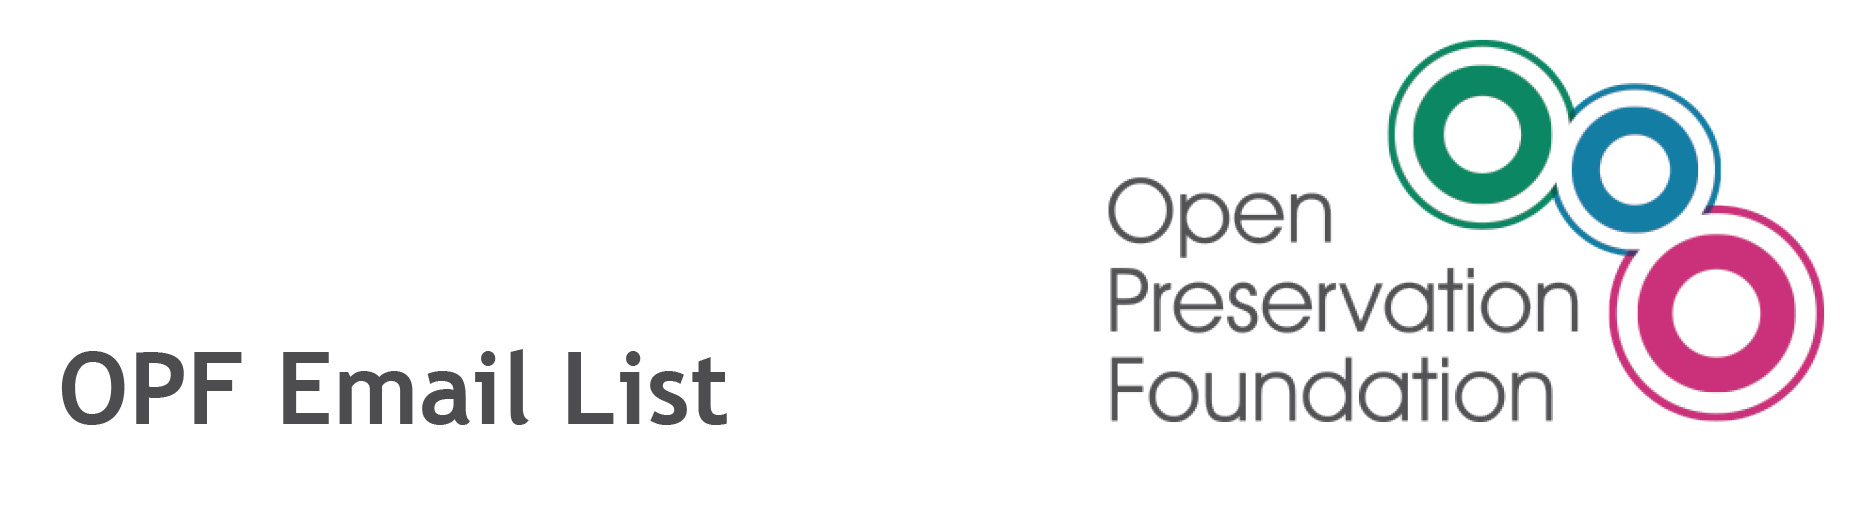 Open Preservation Foundation Email List